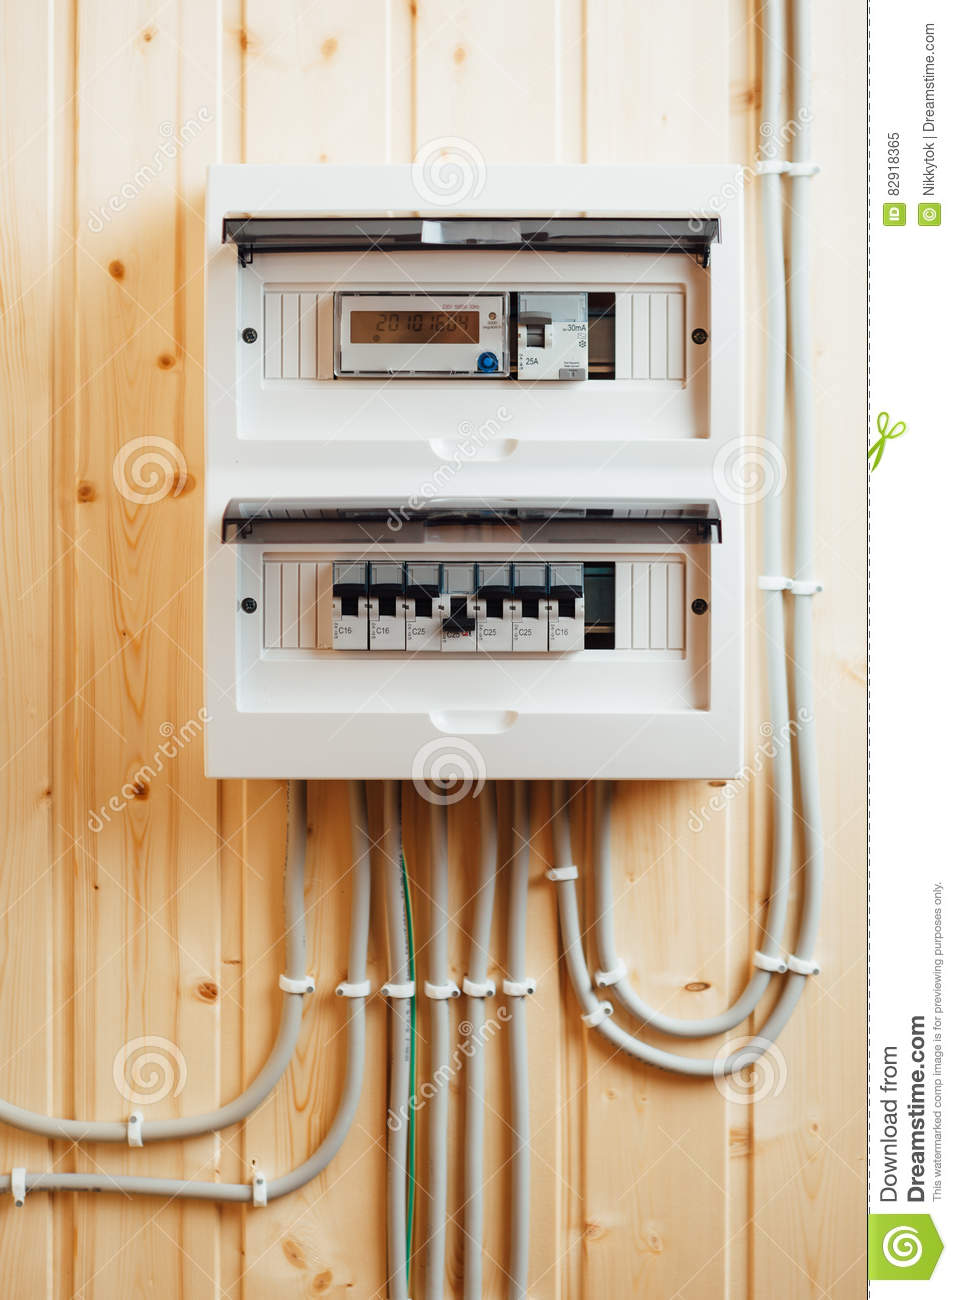 hight resolution of automatic fuses in electricity distribution box inside wooden house